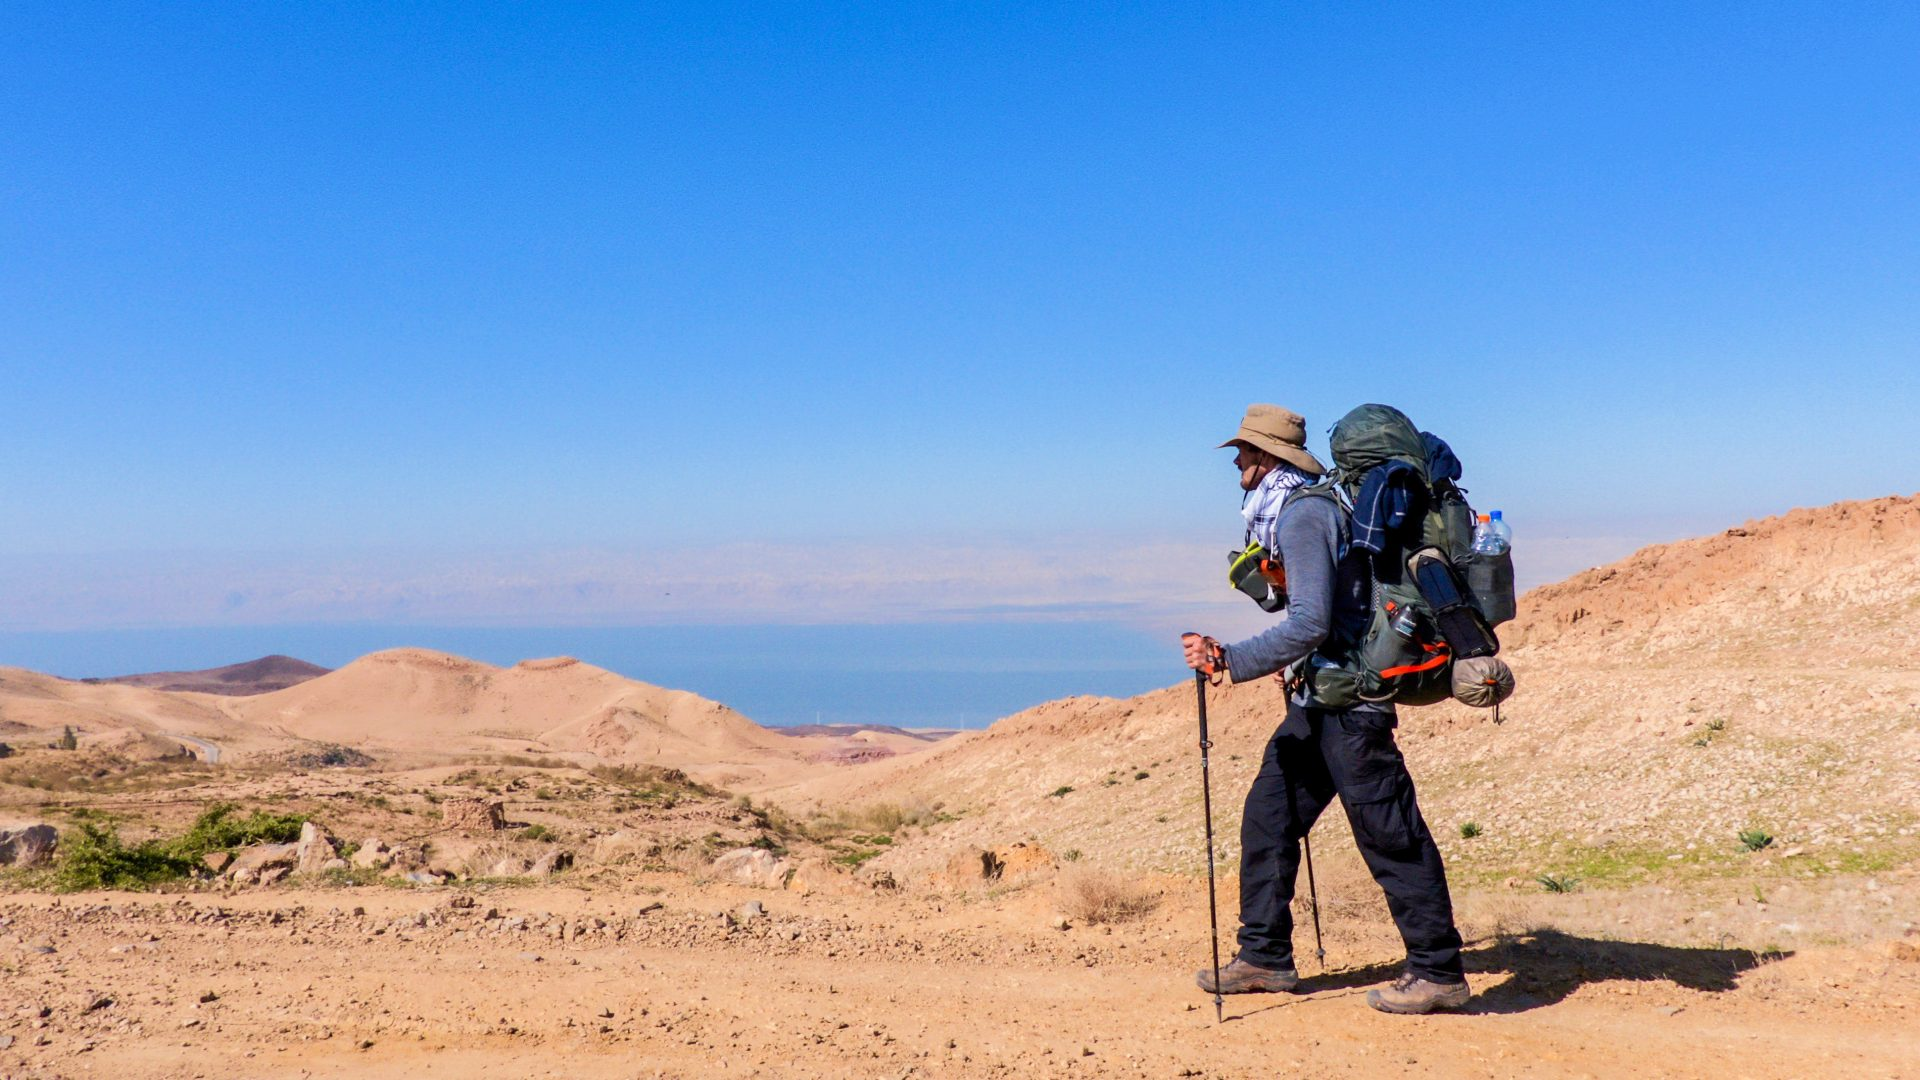 Is walking the most adventurous way to travel?